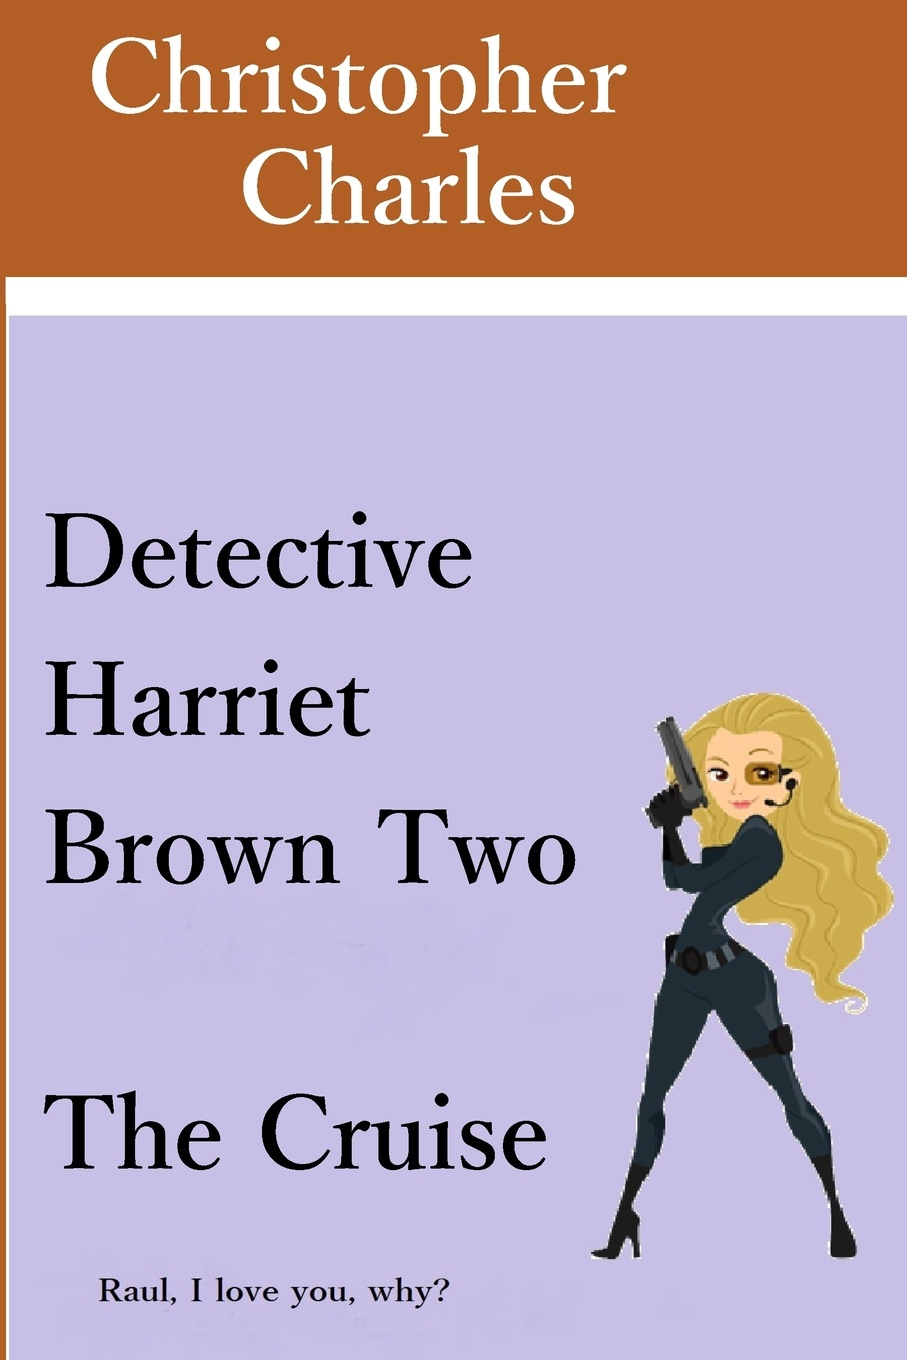 Christopher Charles Detective Harriet Brown Two. The Cruise